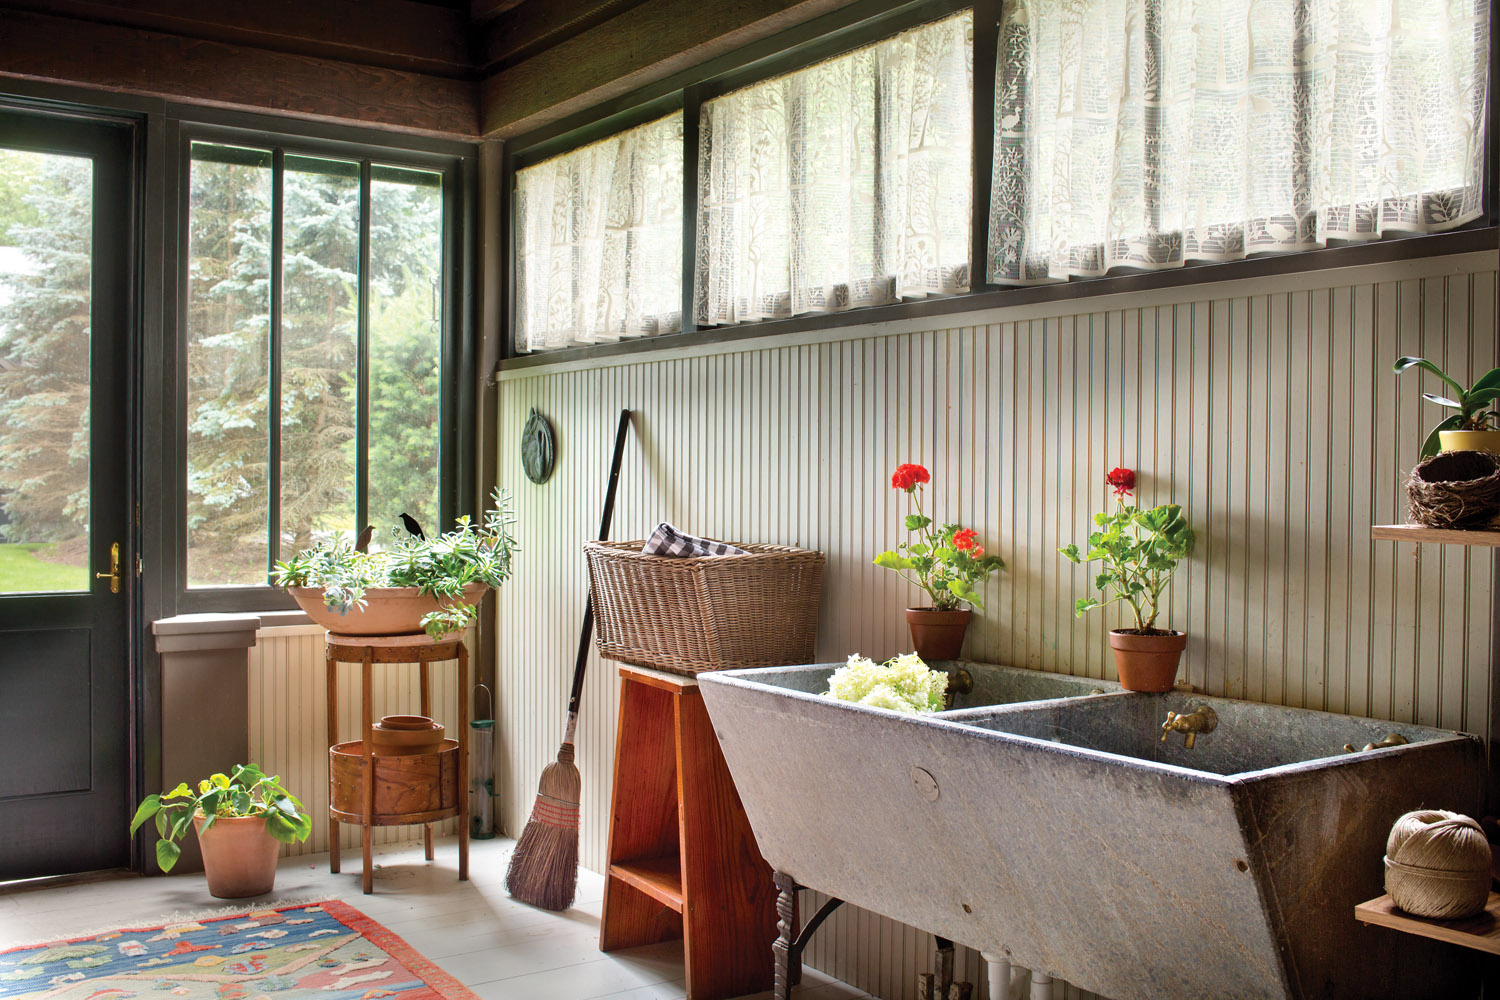 What had been a screened porch is now an enclosed mudroom, with a stone laundry sink perfect for gardening tasks.